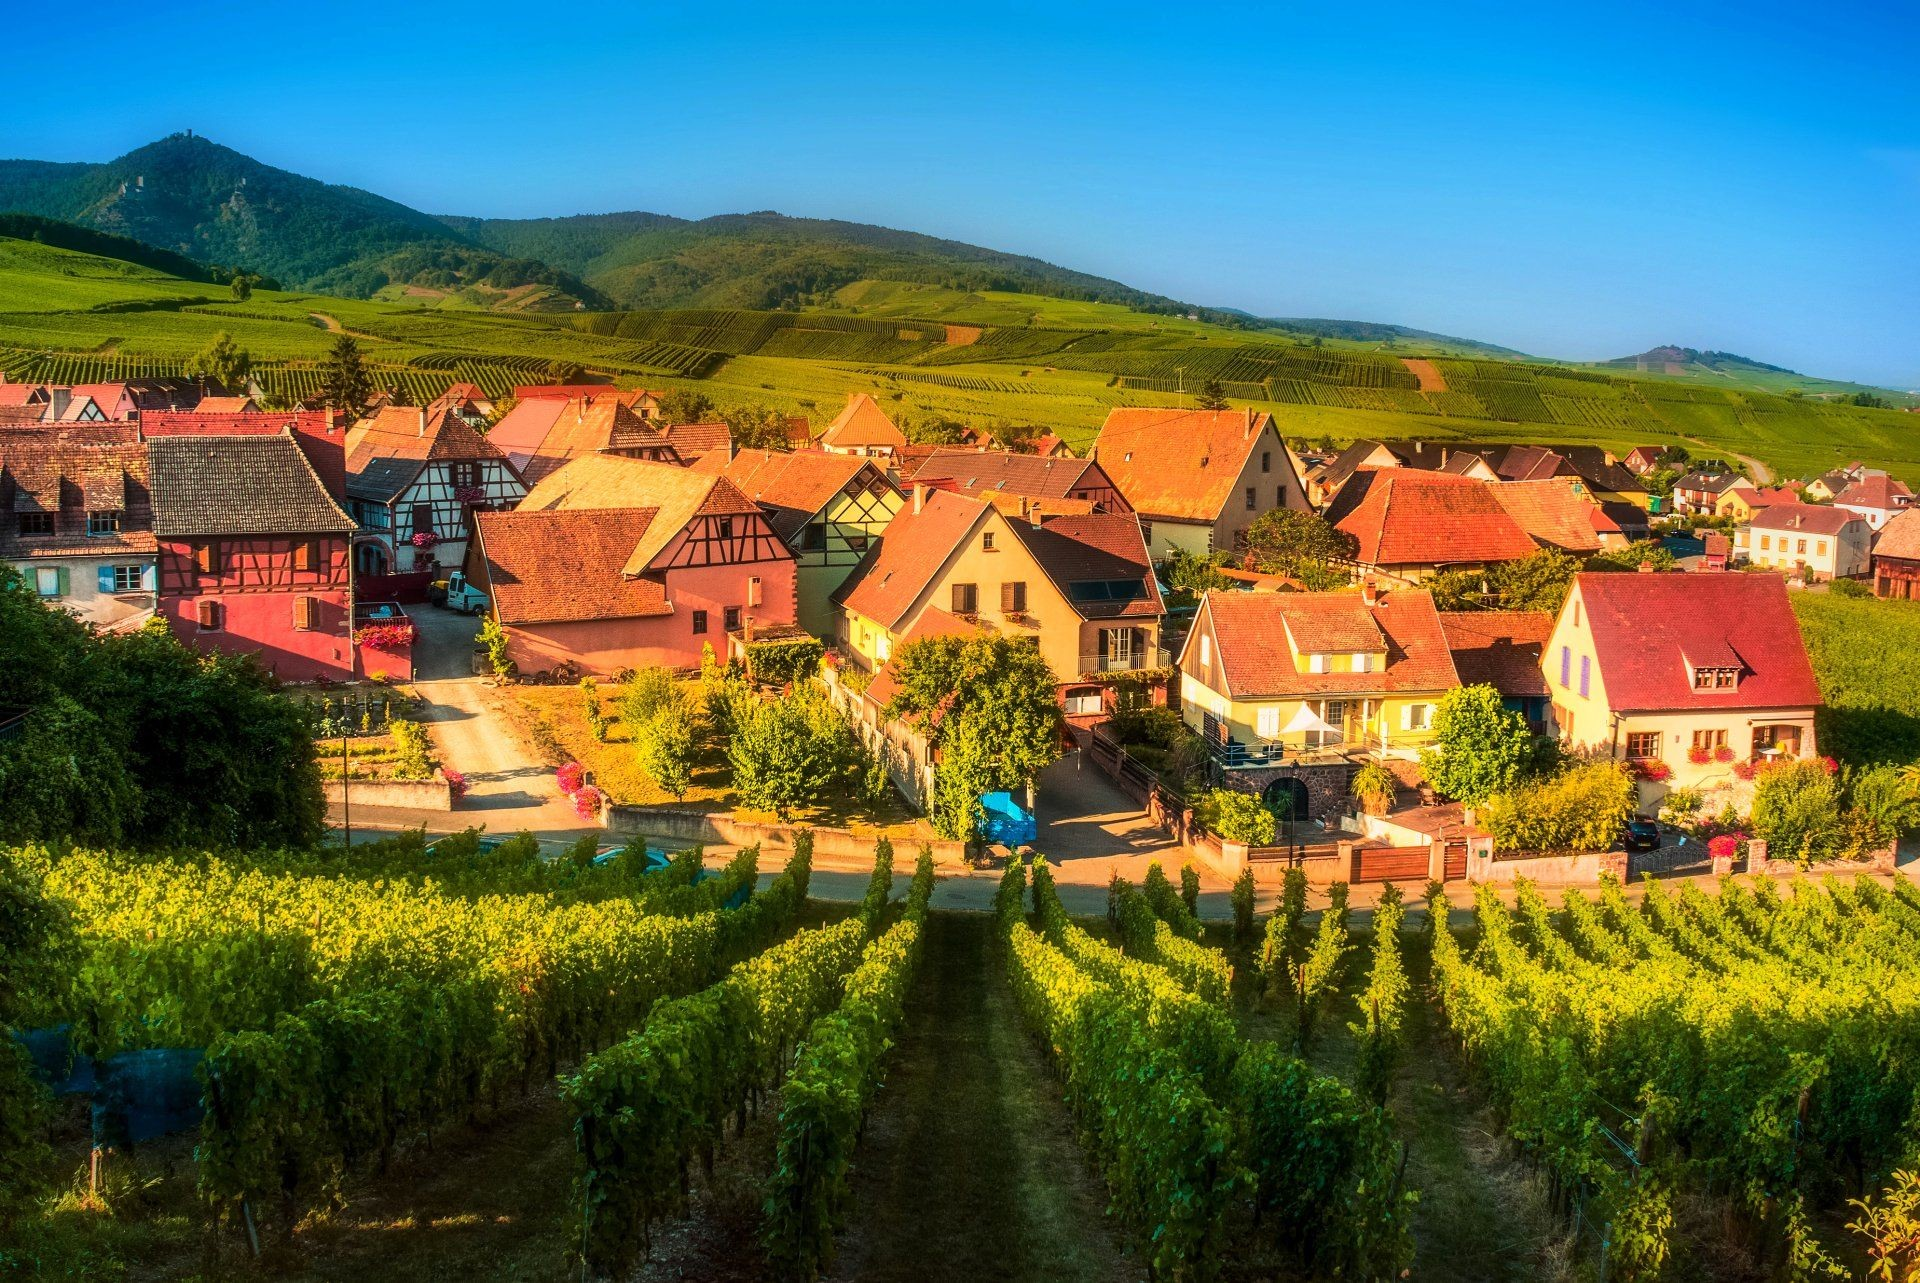 1920x1283 Man Made Village House France Mountain Landscape Tree Vineyard Wallpaper